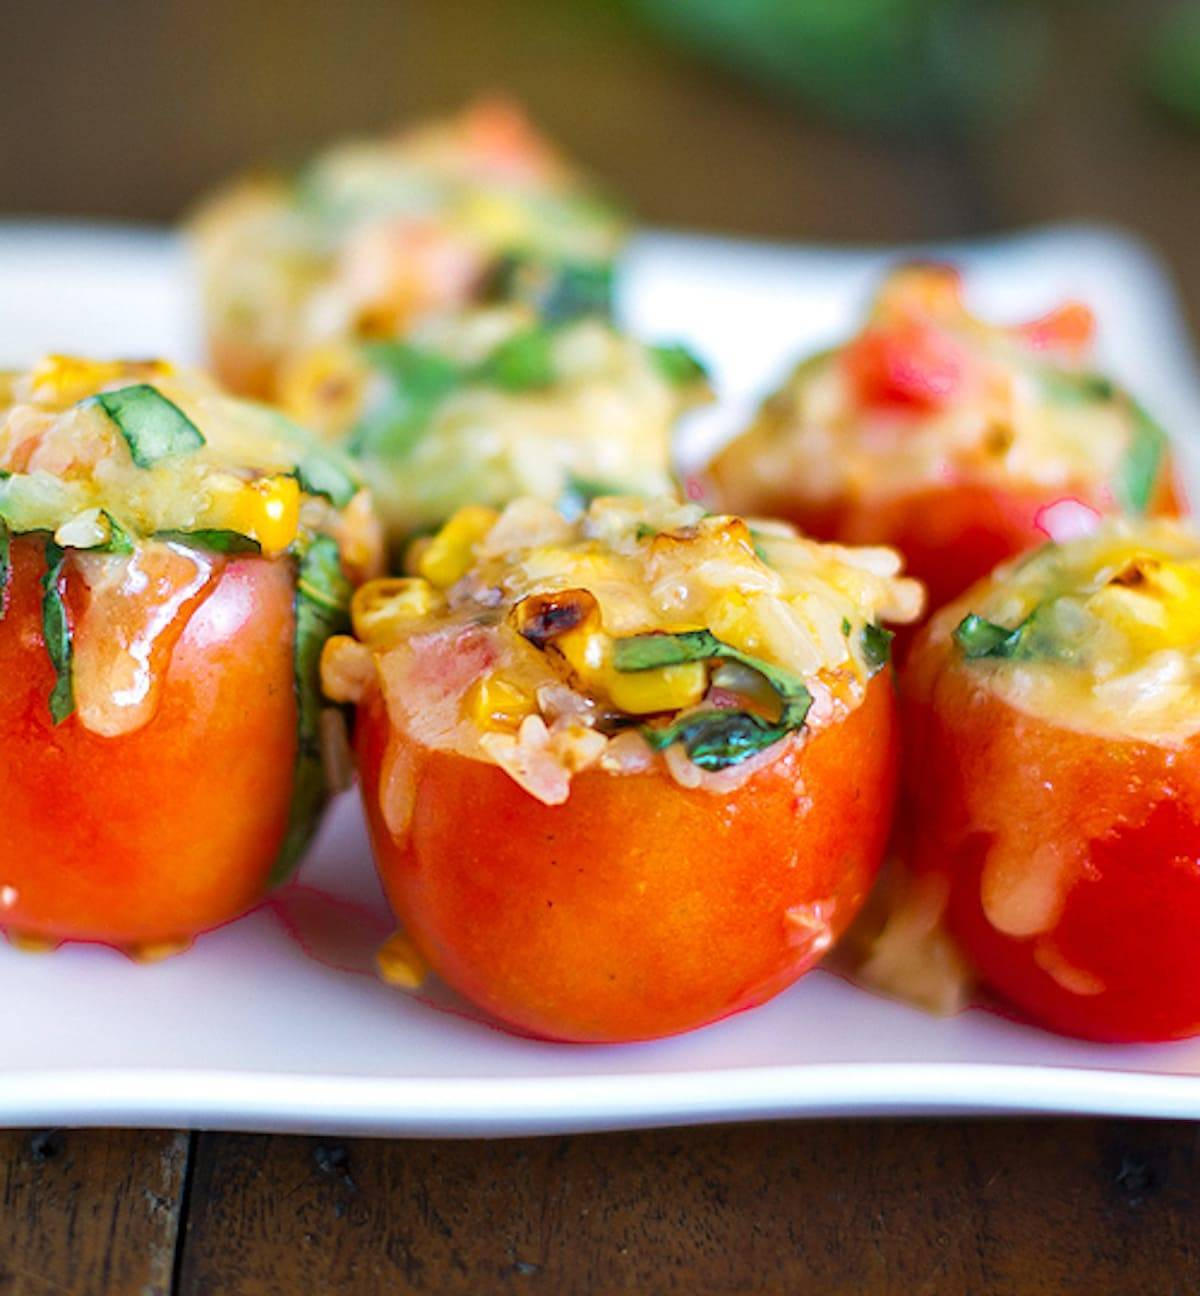 Stuffed tomatoes filled to the brim with roasted corn, fresh basil, and topped with melted Mozzarella cheese.